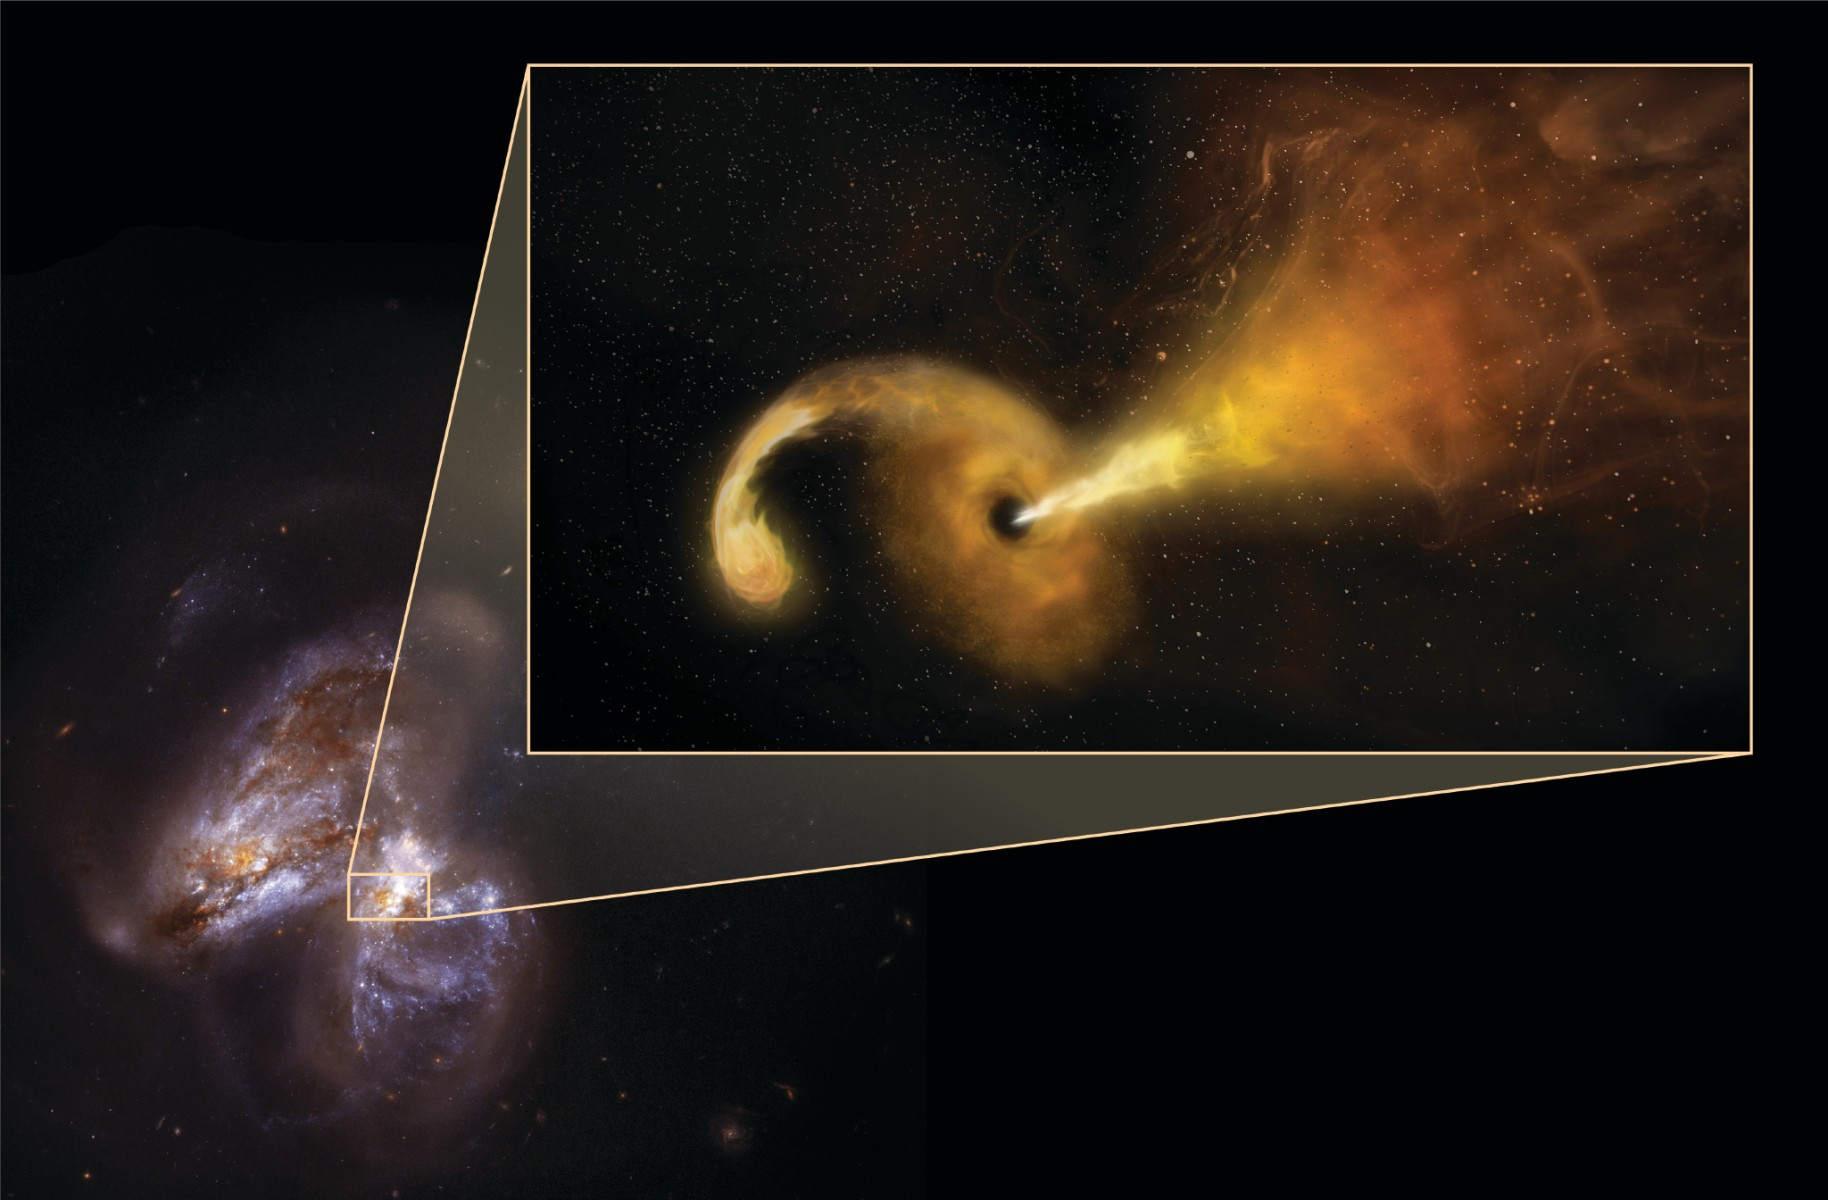 Astronomers watch a black hole eating a star